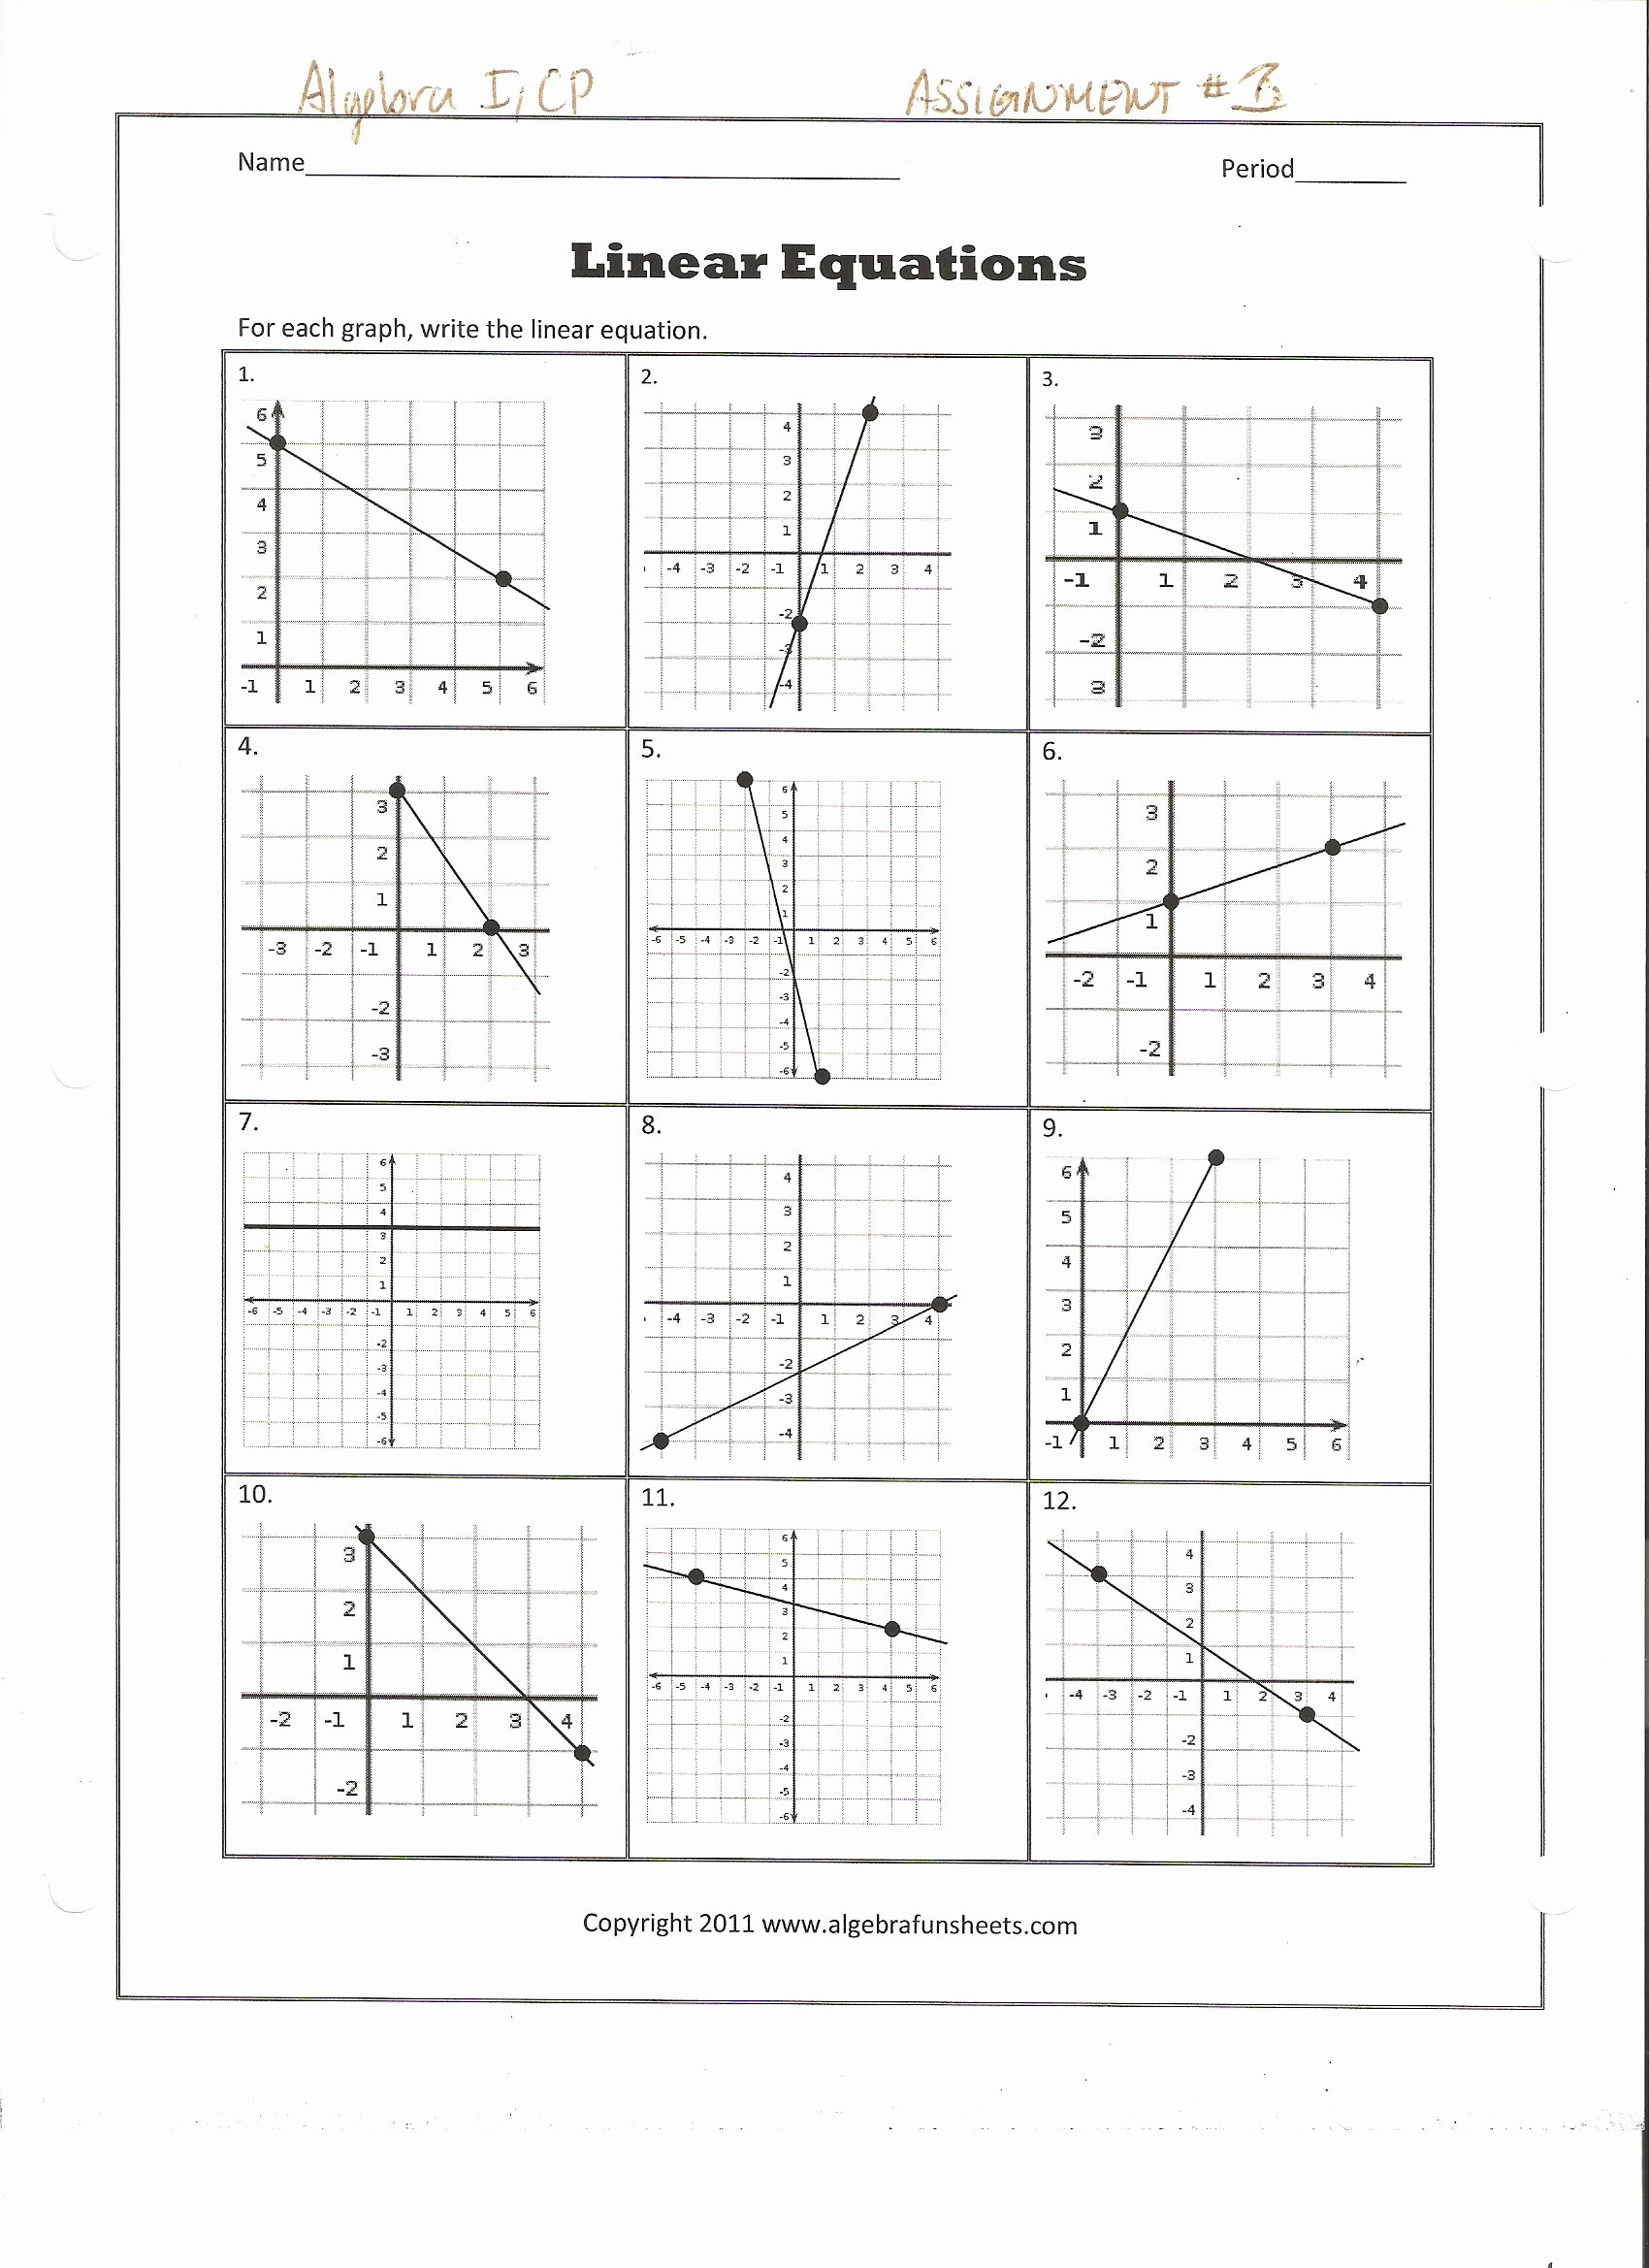 Writing Equations From Tables Worksheet Awesome Tables Graphs Equations Functions Worksheet